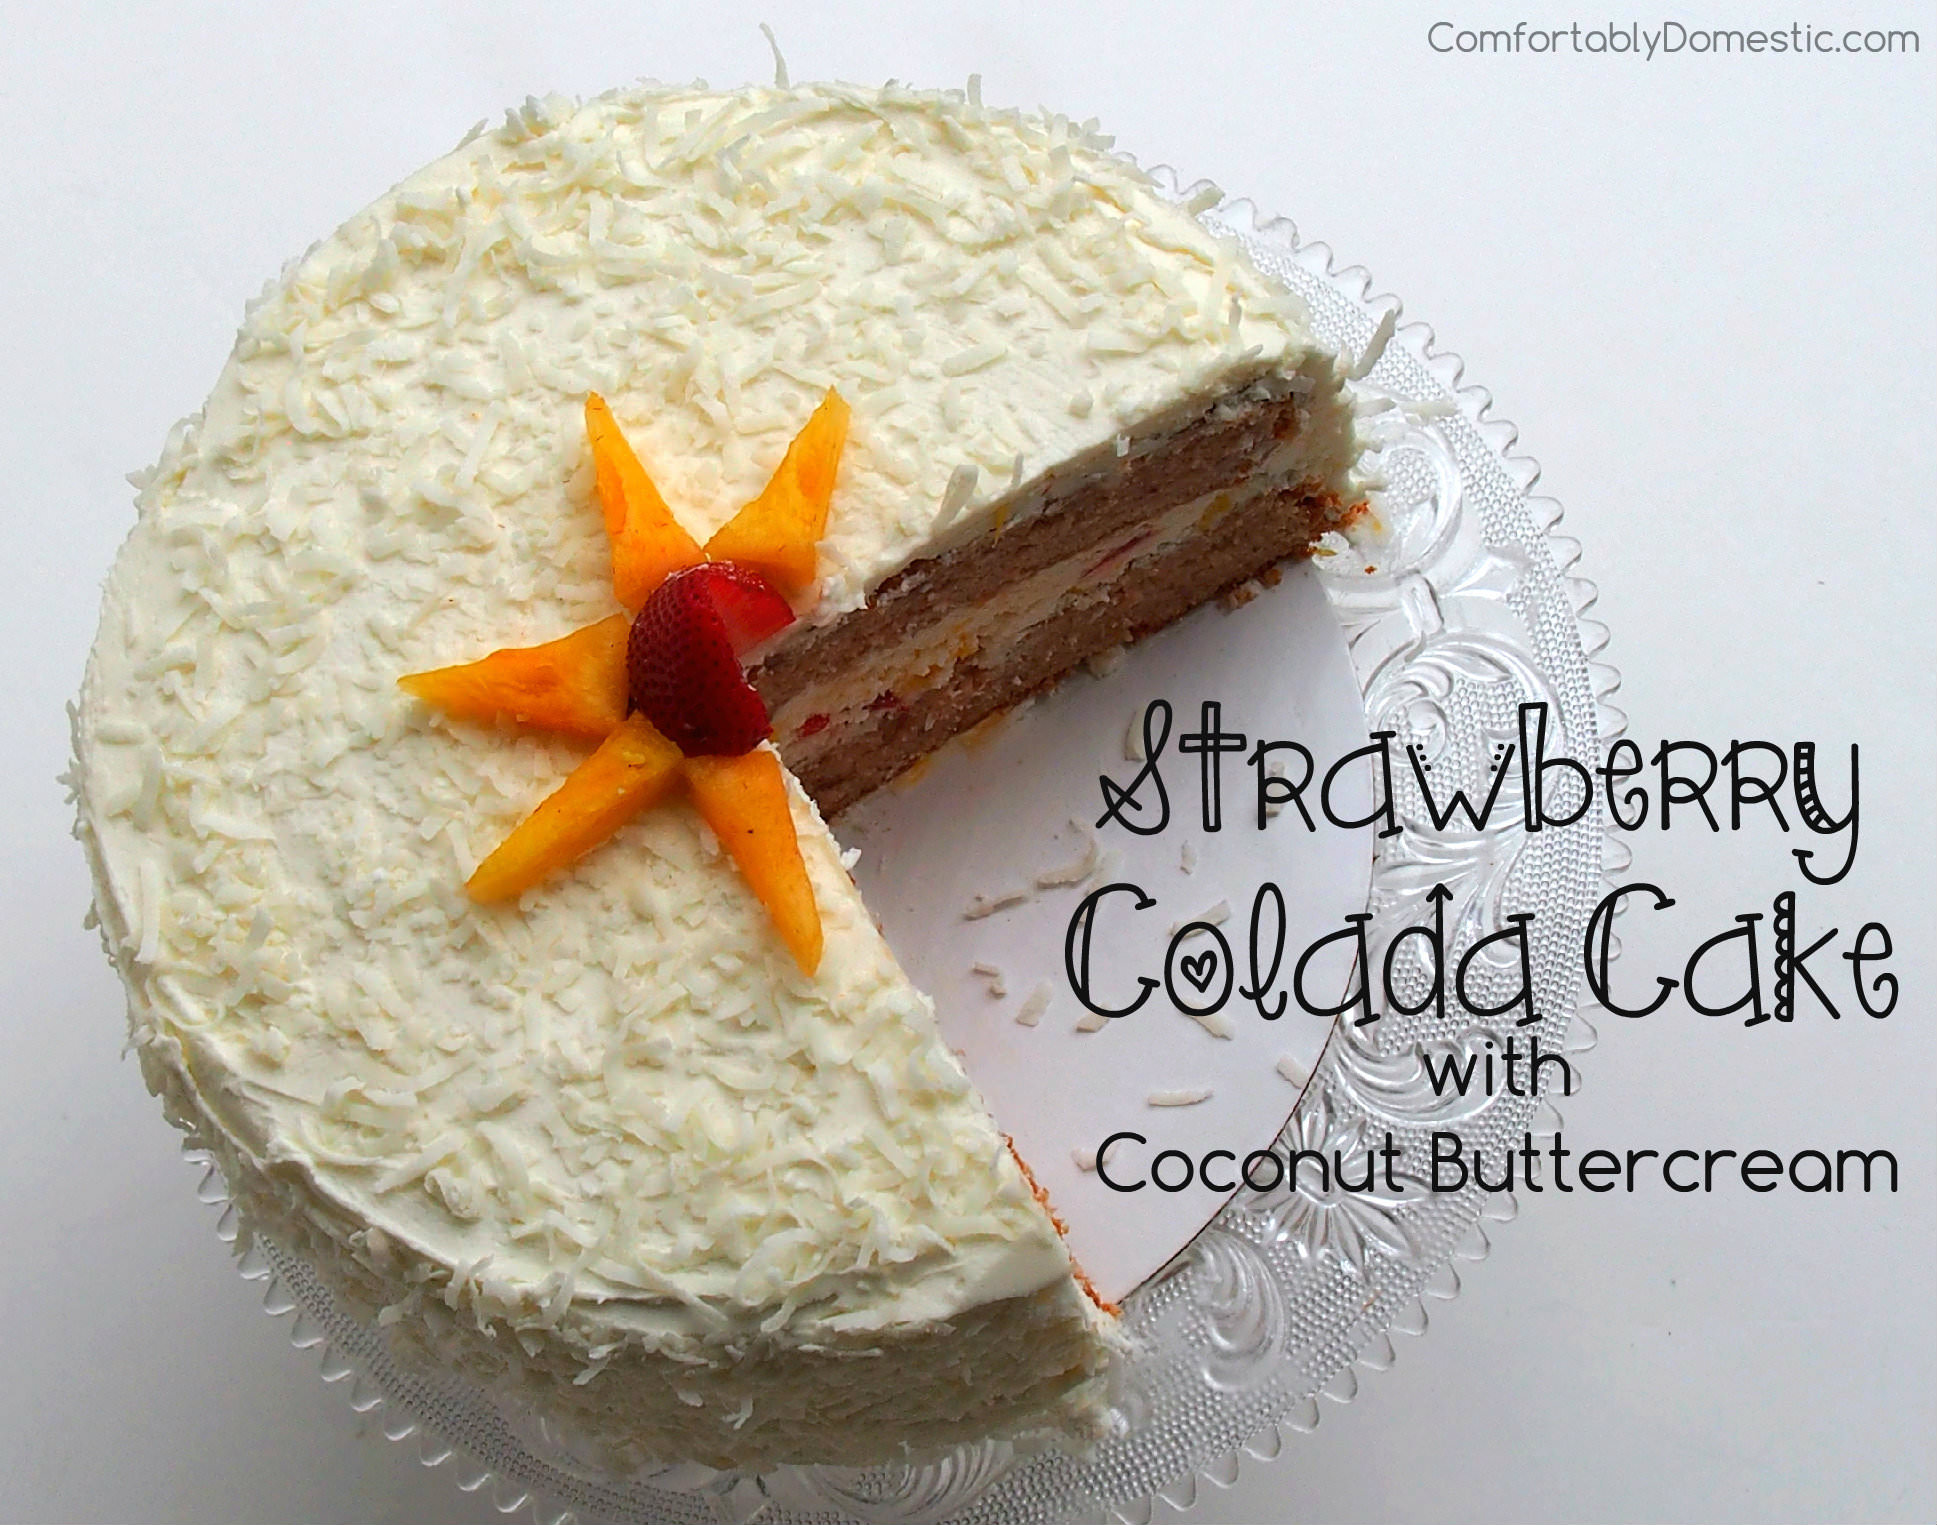 Strawberry Colada Cake with Coconut Buttercream || ComfortablyDomestic.com